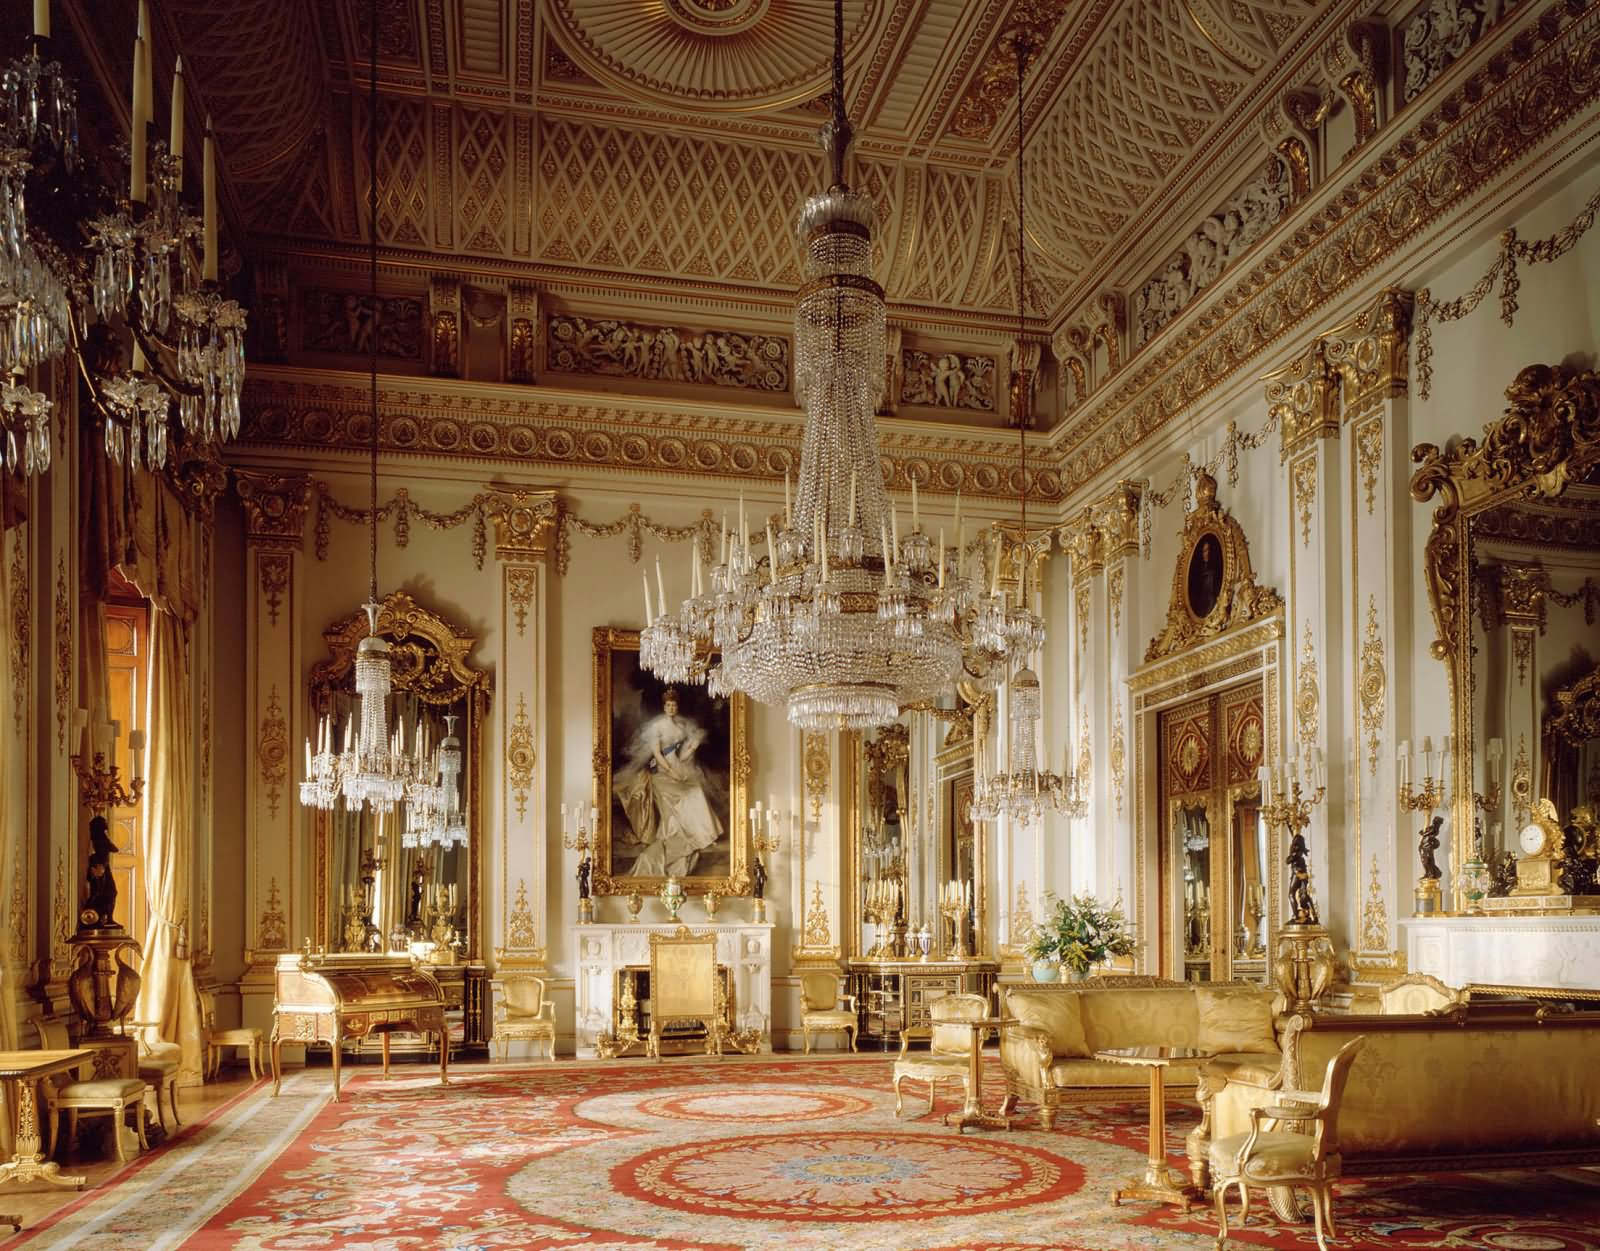 Inside Picture Of The Buckingham Palace London - THE MOST BEAUTIFUL INTERIOR PICTURES OF BUCKINGHAM PALACE LONDON